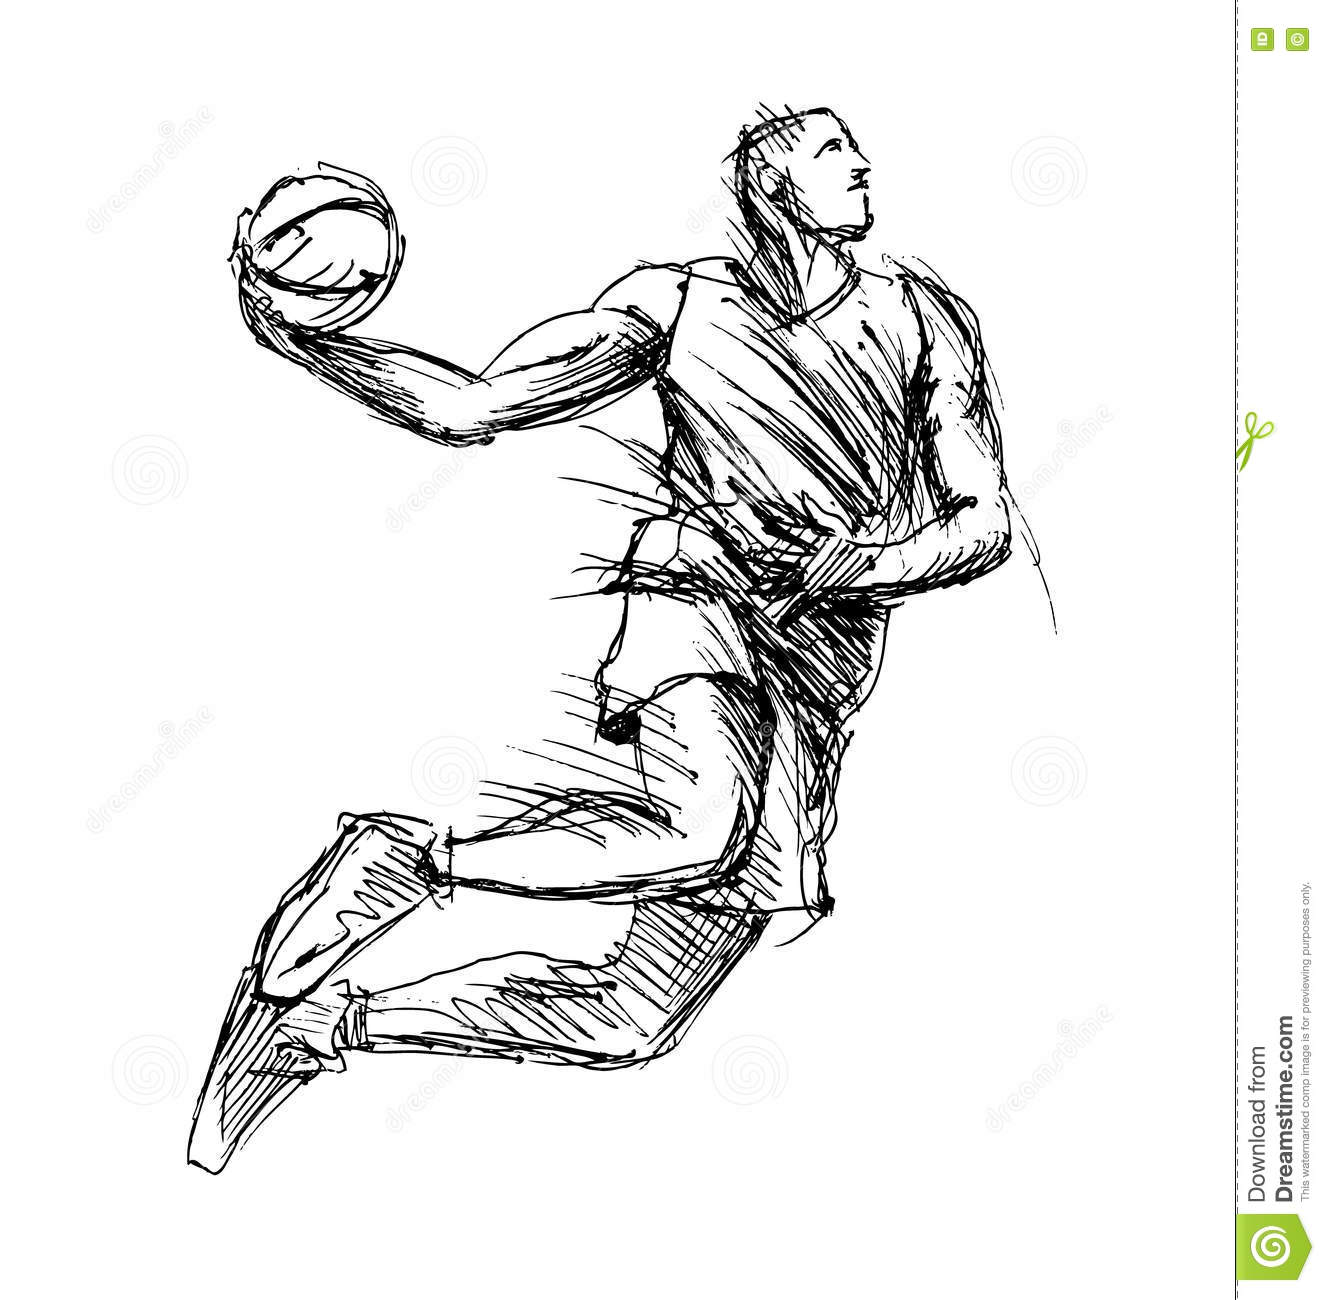 Hand Sketch Basketball Player Stock Vector - Illustration Of Human Basket 71879951